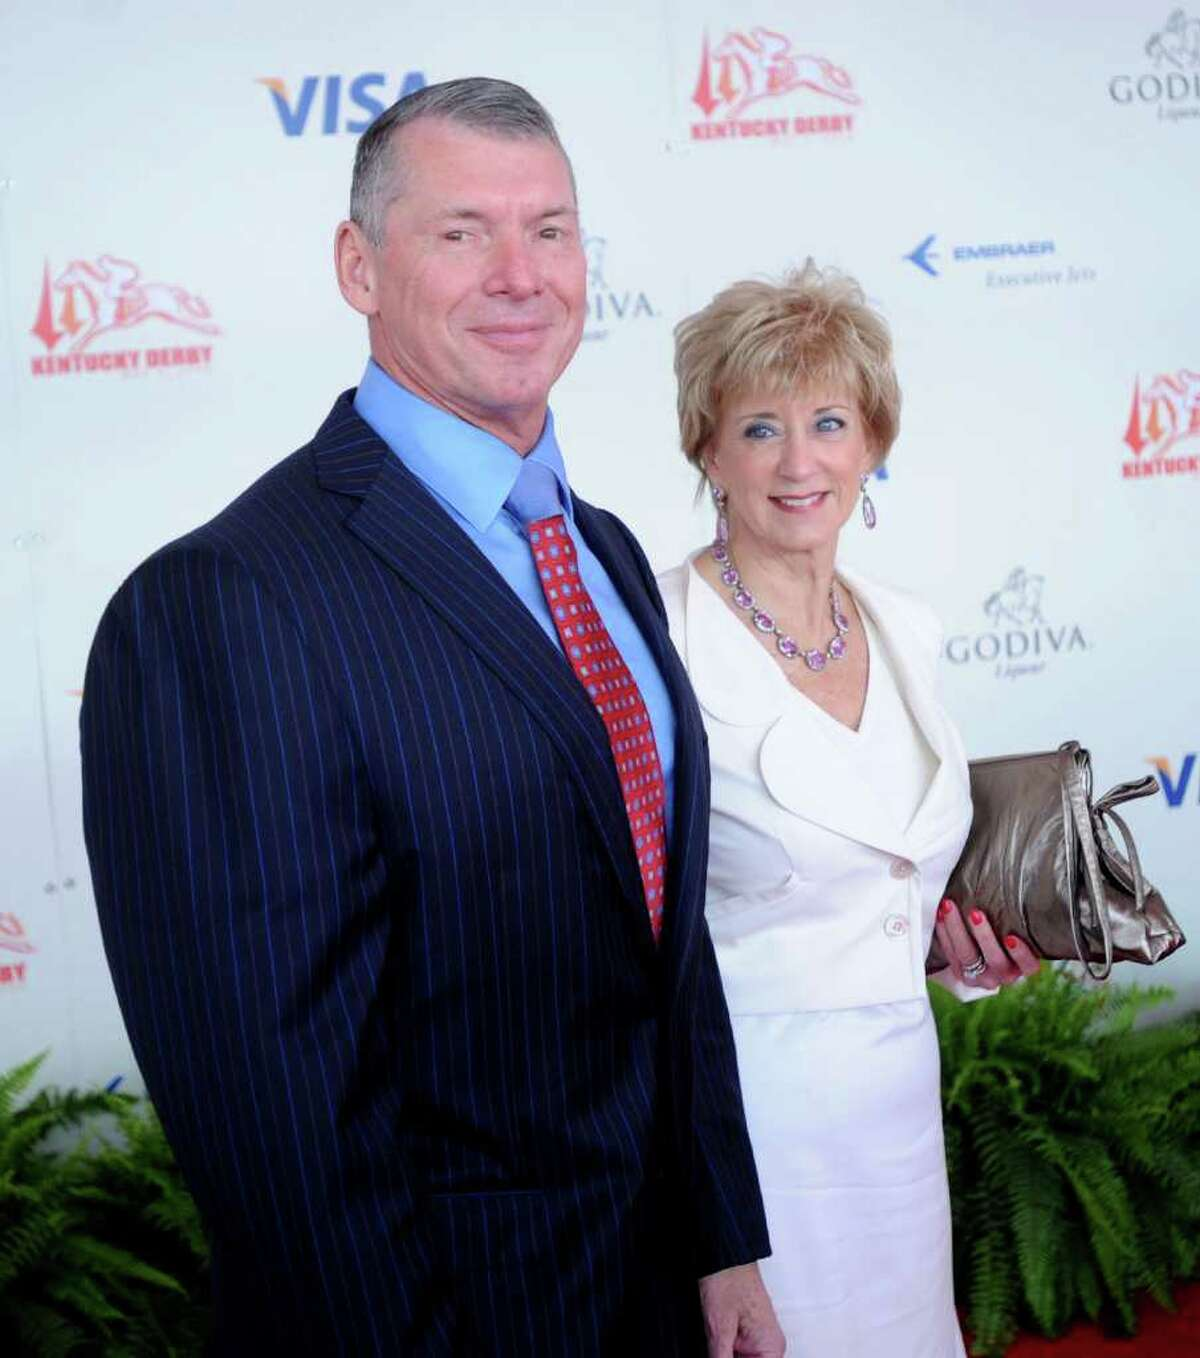 WWE Chairman Vince McMahon and his wife Linda McMahon, CEO of World Wrestling Entertainment, Inc., attend the 134th running of the Kentucky Derby at Churchill Downs on May 3, 2008 in Louisville, Kentucky. (Photo by Jeff Gentner/Getty Images) 7/25/10 GT photo = Vince. Whoever he's battling, Vince McMahon is a tough guy to pin down. by Brian Lockhart